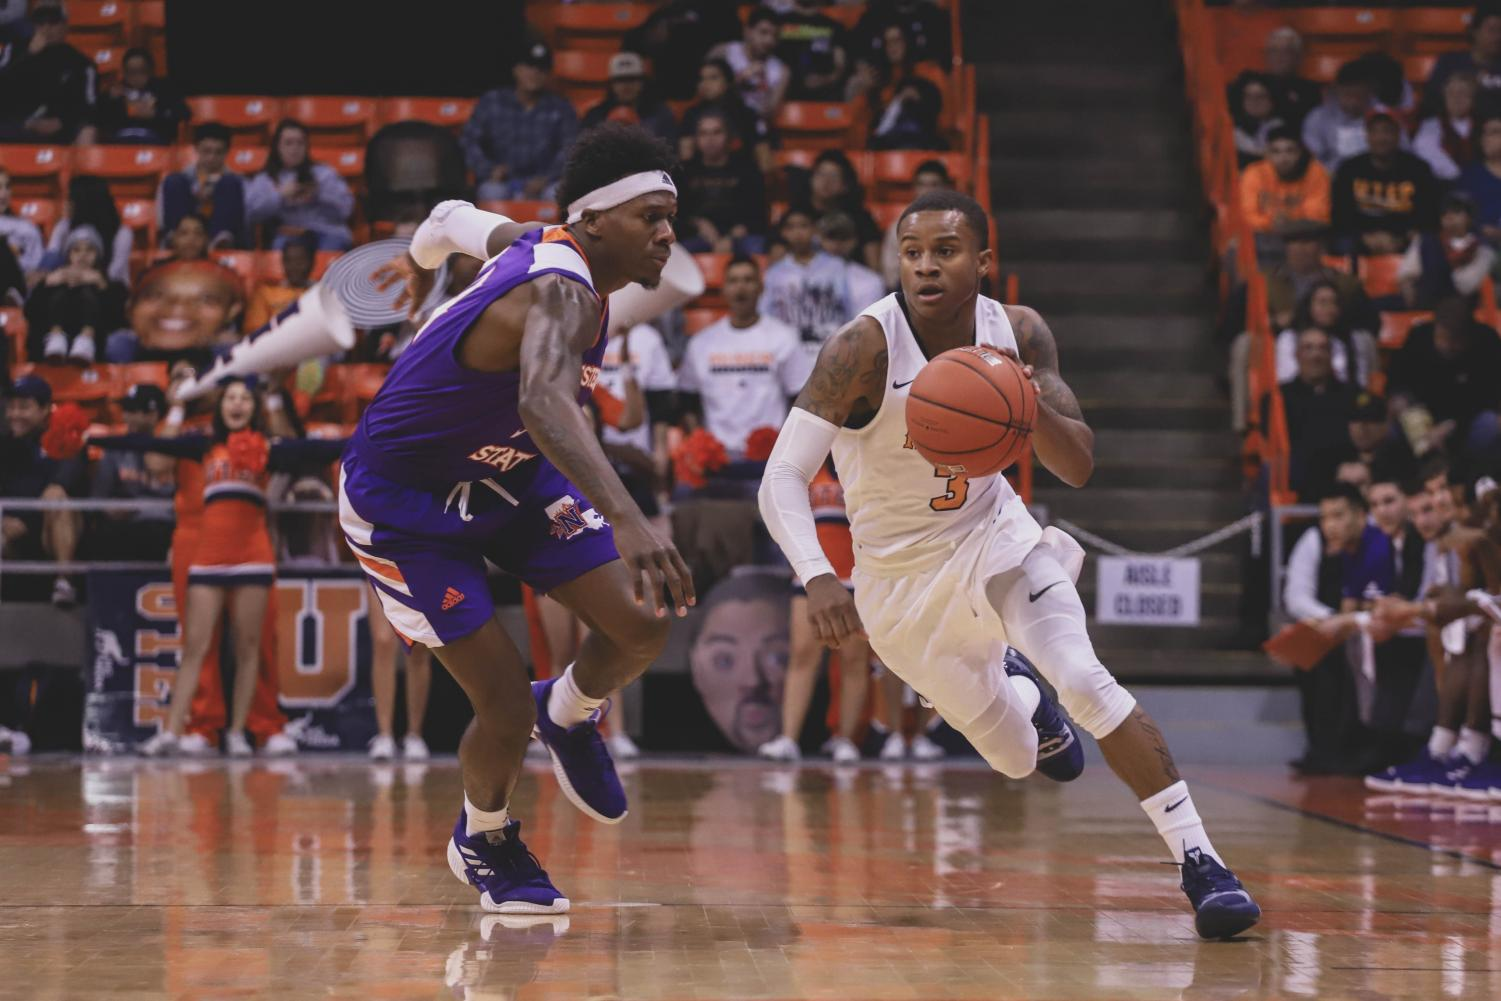 The+Miners+beat+the+Northwestern+State+Demons+on+Saturday+night%2C+Dec.+1+at+the+Don+Haskins+Center.+